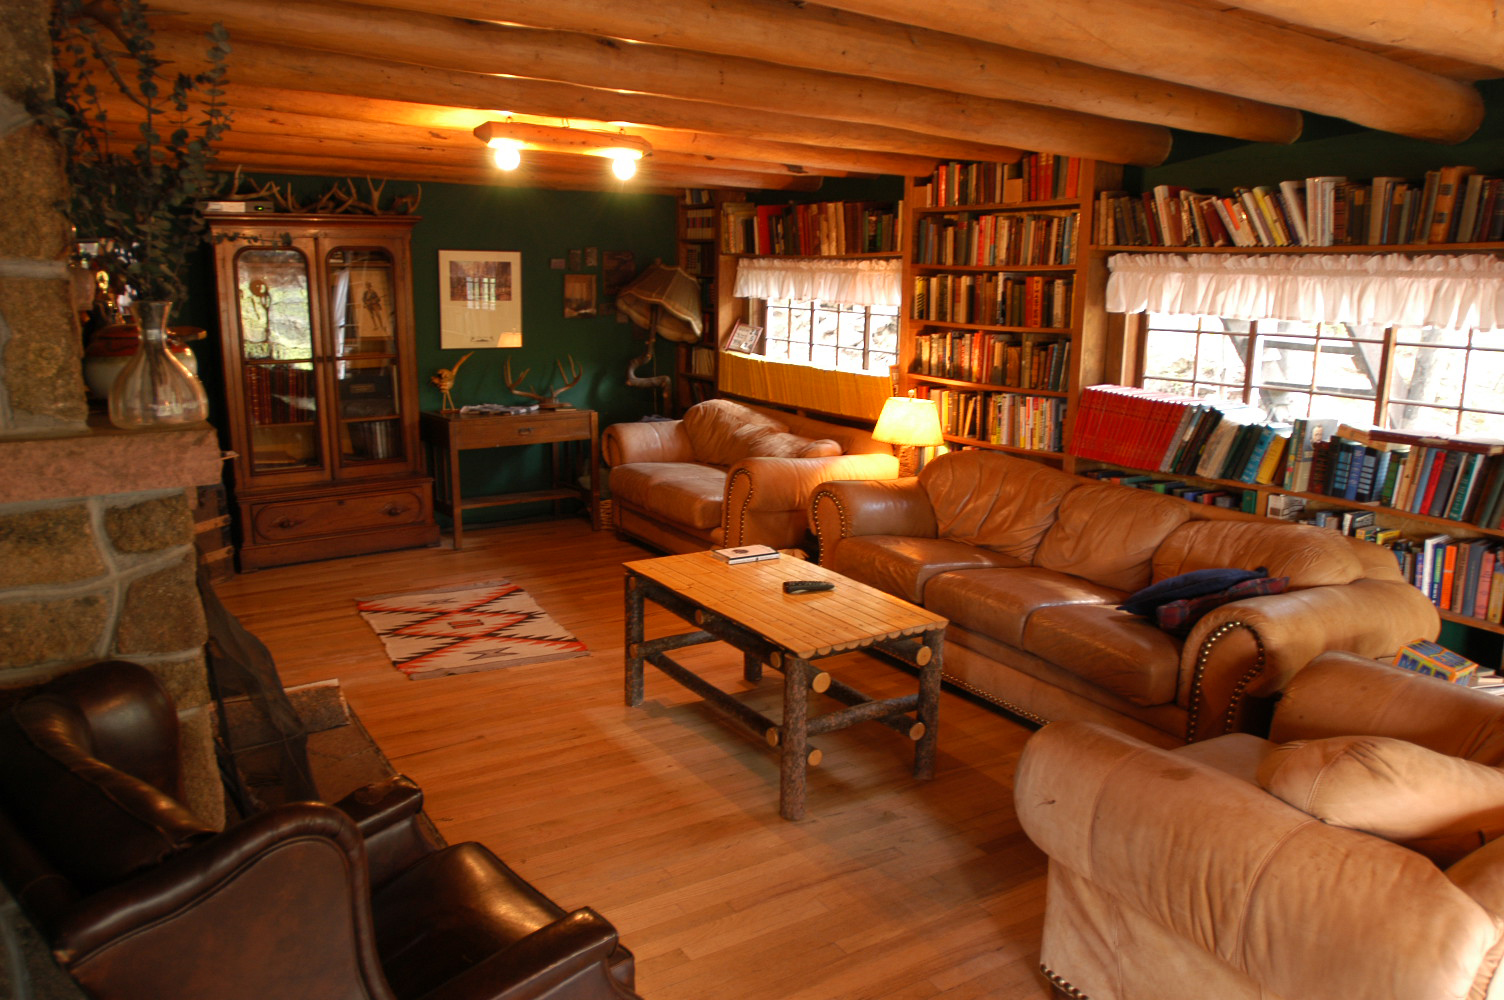 The inn features a cozy library